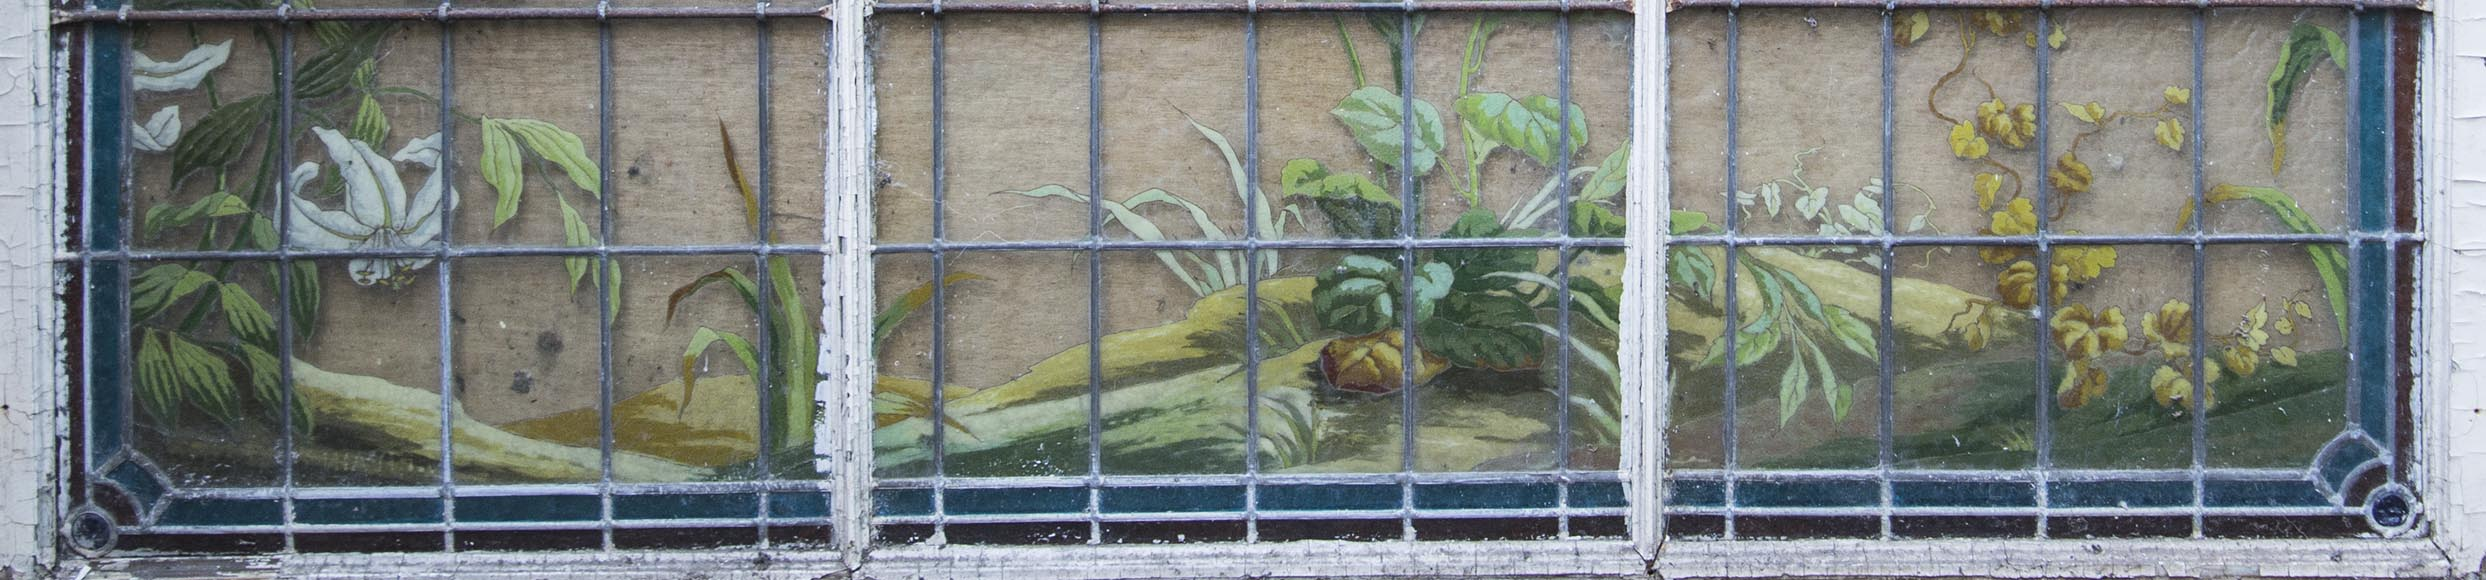 Old stained glass window of a building, decorated with flowers and butterfly-3